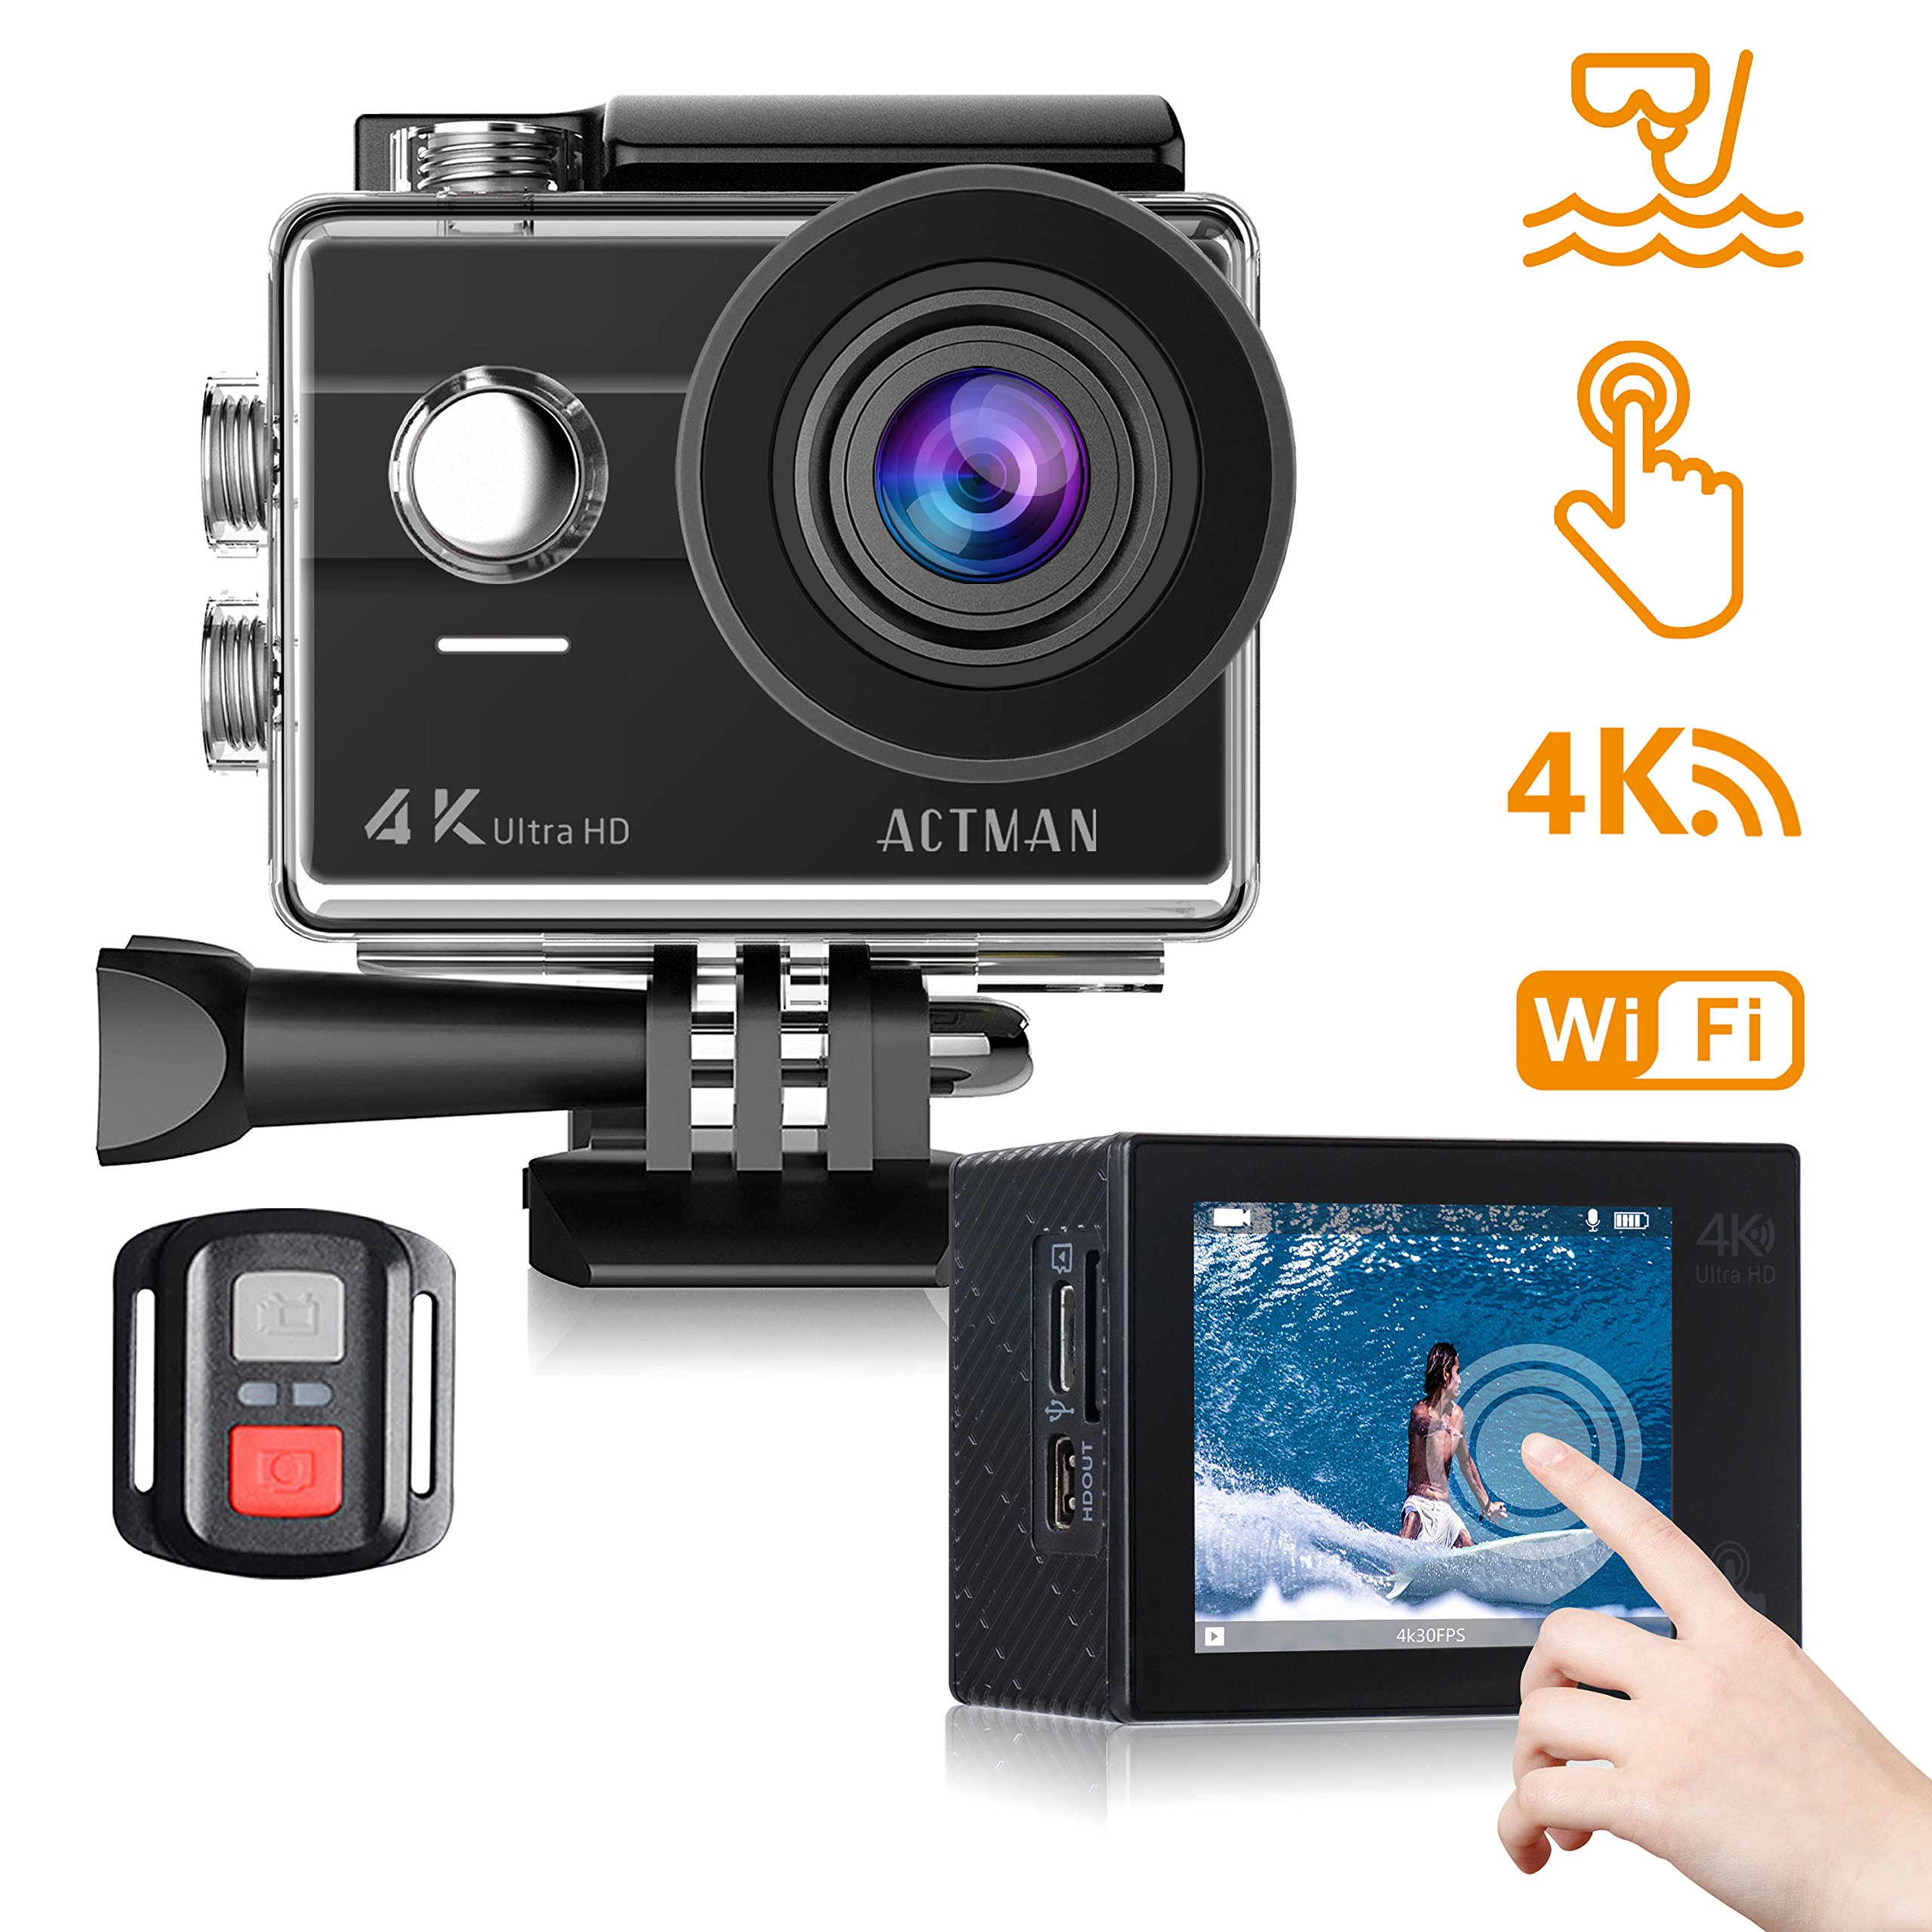 Action Camera 4K ACTMAN Touch Screen 16MP Sony Sensor Underwater Waterproof Camera WiFi Sports Cam with Remote control 2 Batteries and Mounting Accessories Kit Compatible With go pro